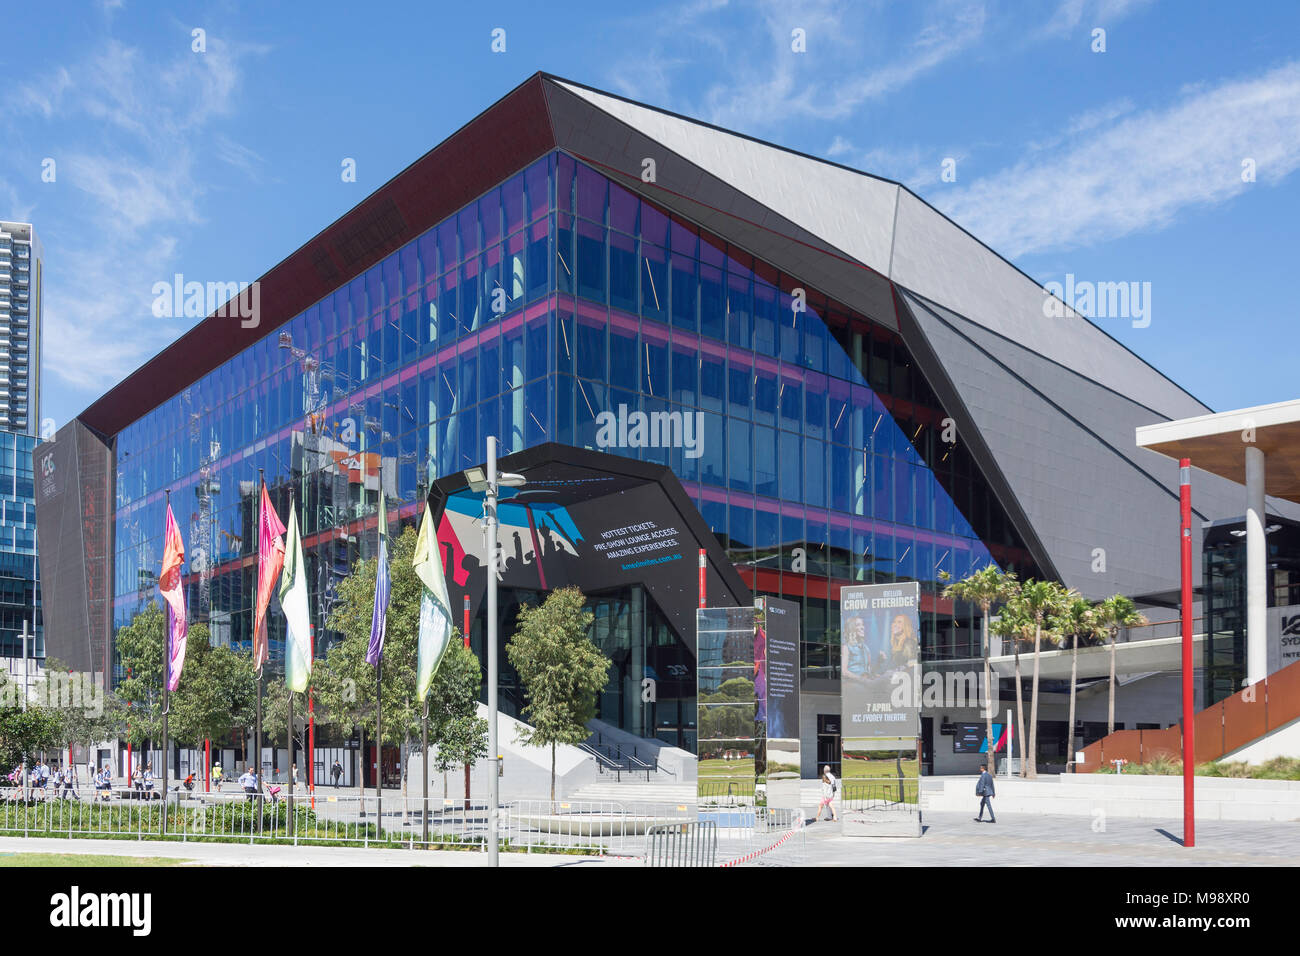 International Convention Centre Sydney Theatre (ICC Sydney), Darling Drive, Darling Harbour, Sydney, New South Wales, Australia - Stock Image